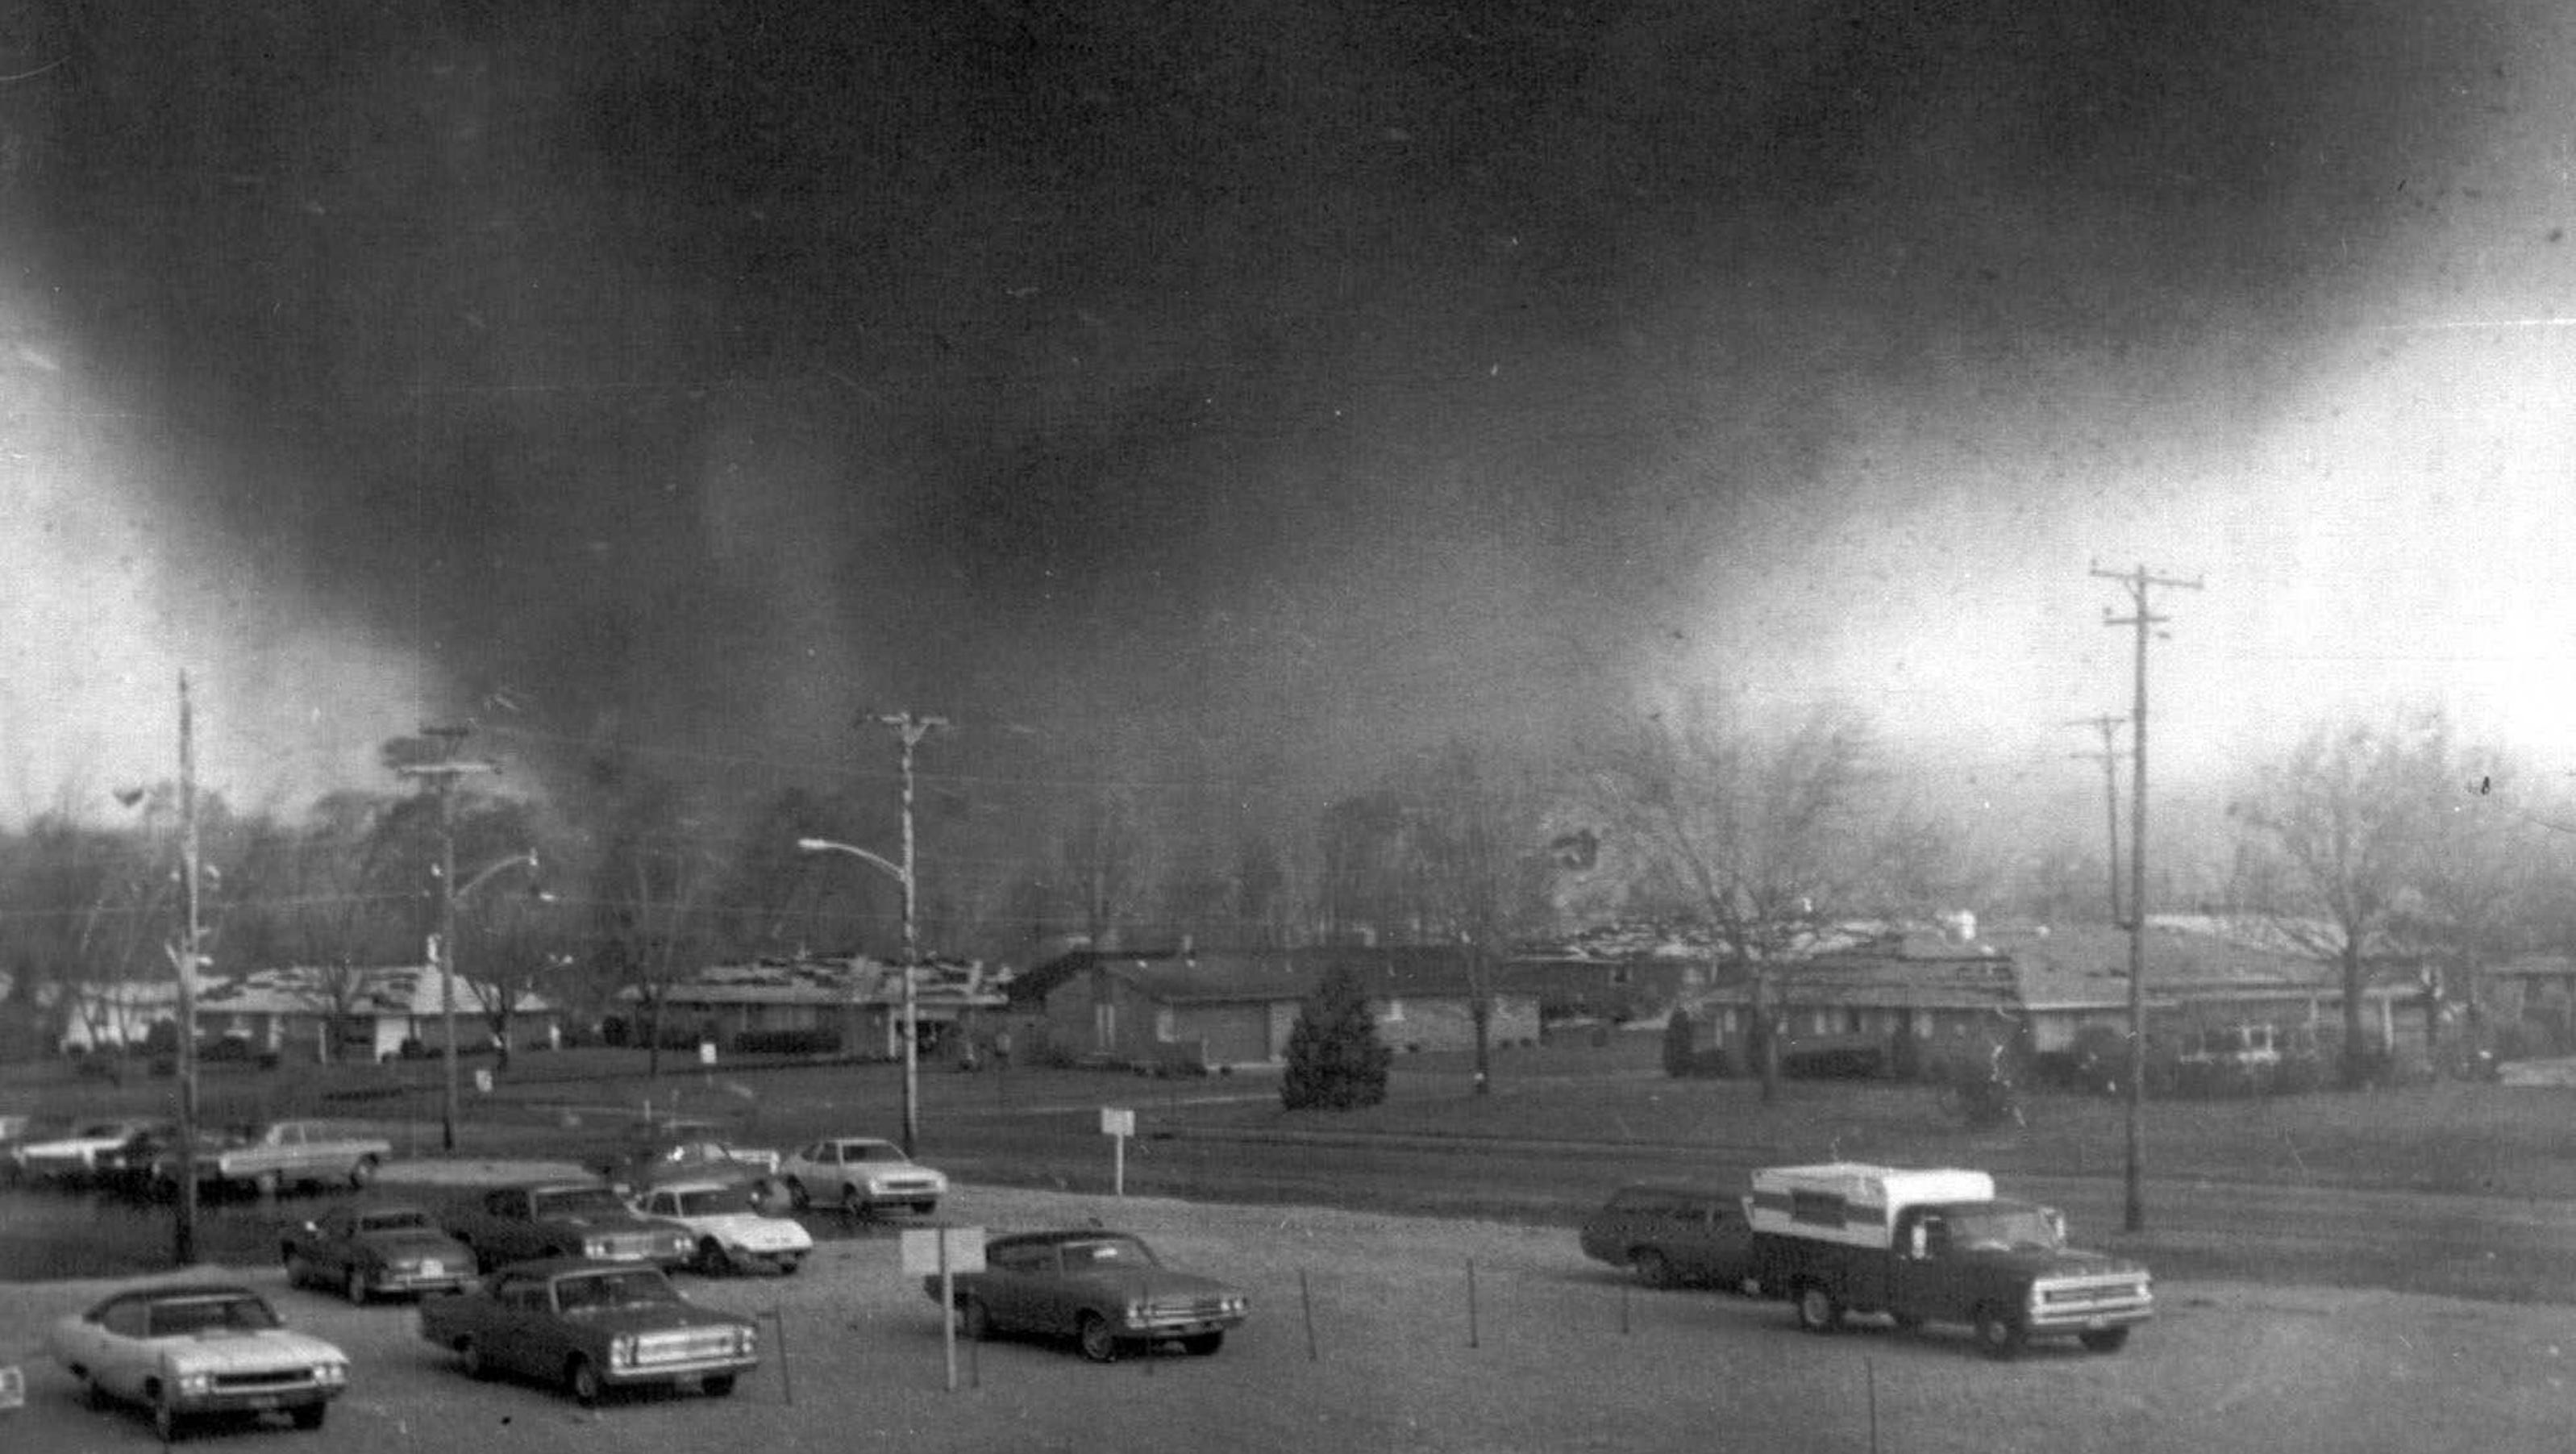 40 Years Ago Tornadoes Ravaged Midwest